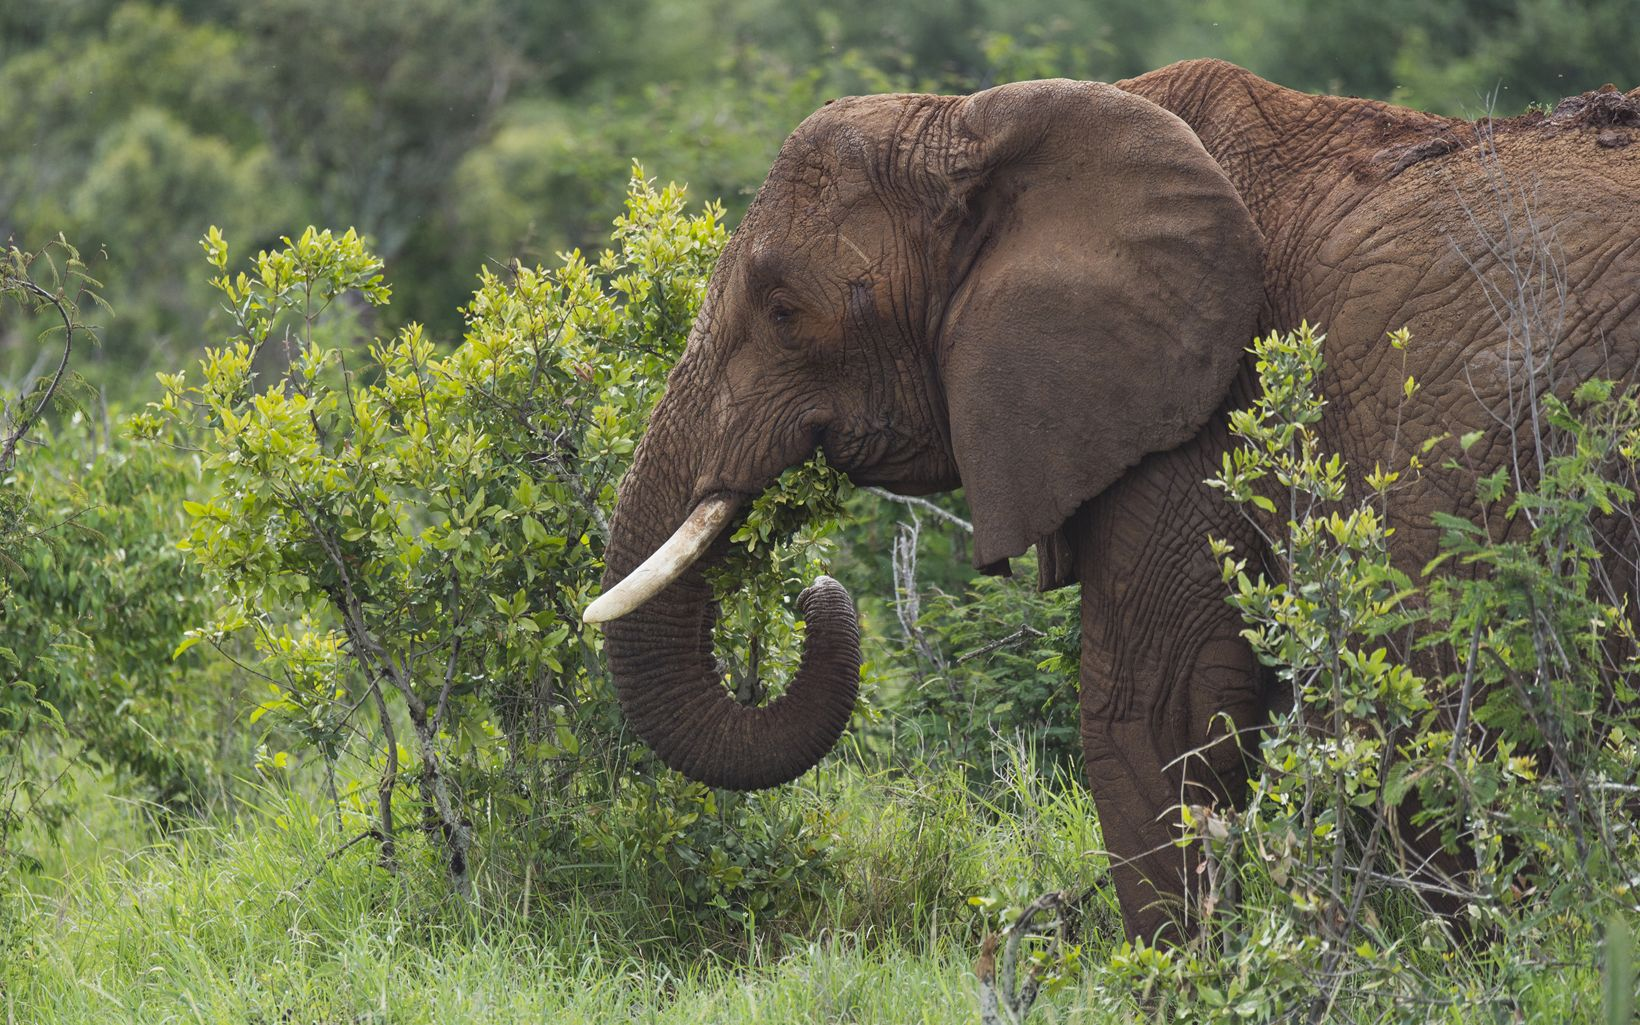 Elephant in the Loisaba Conservancy.